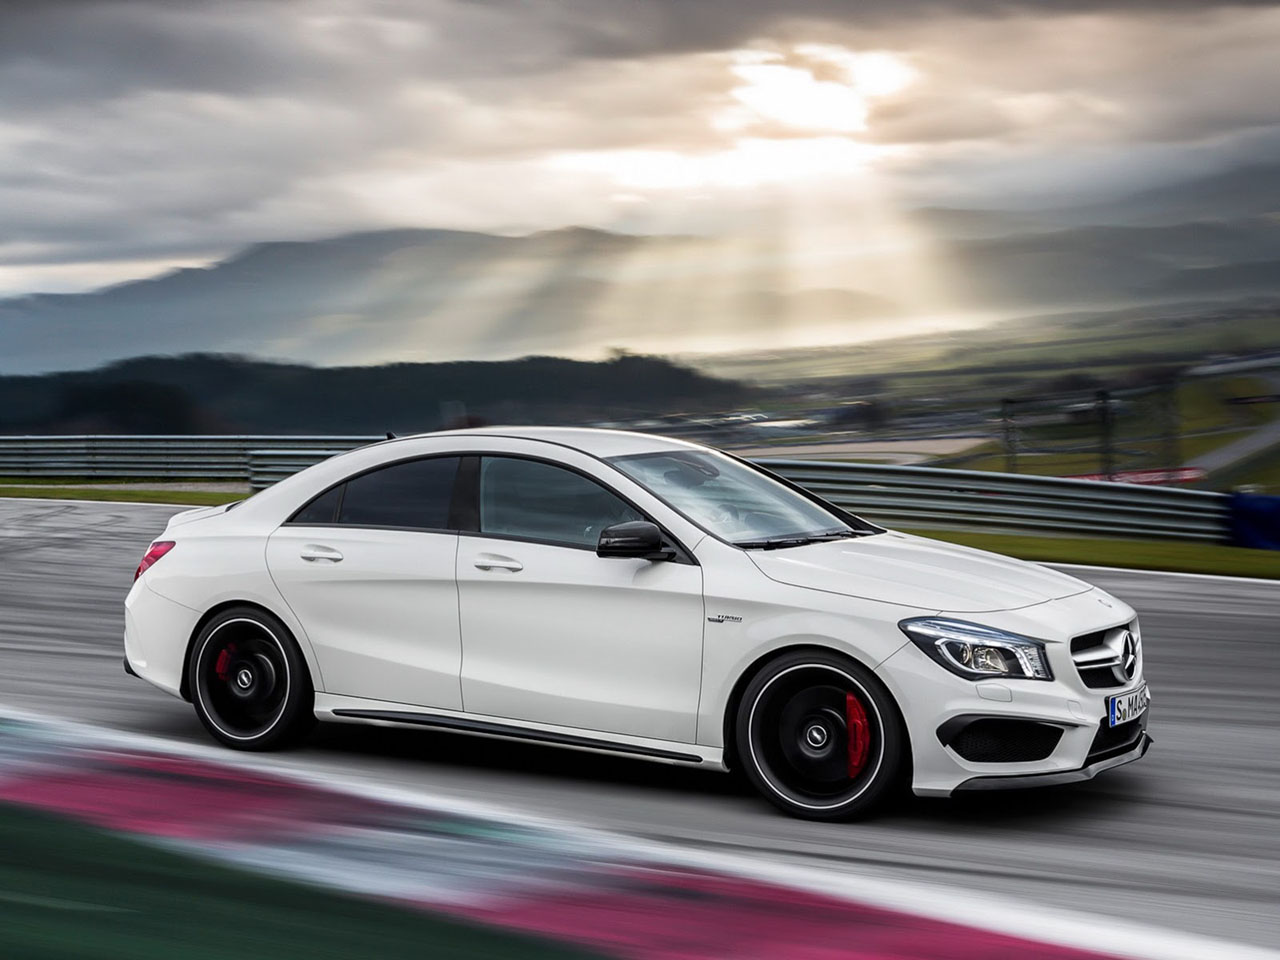 mercedes cla45 amg official images leaked before new york debut motoroids. Black Bedroom Furniture Sets. Home Design Ideas